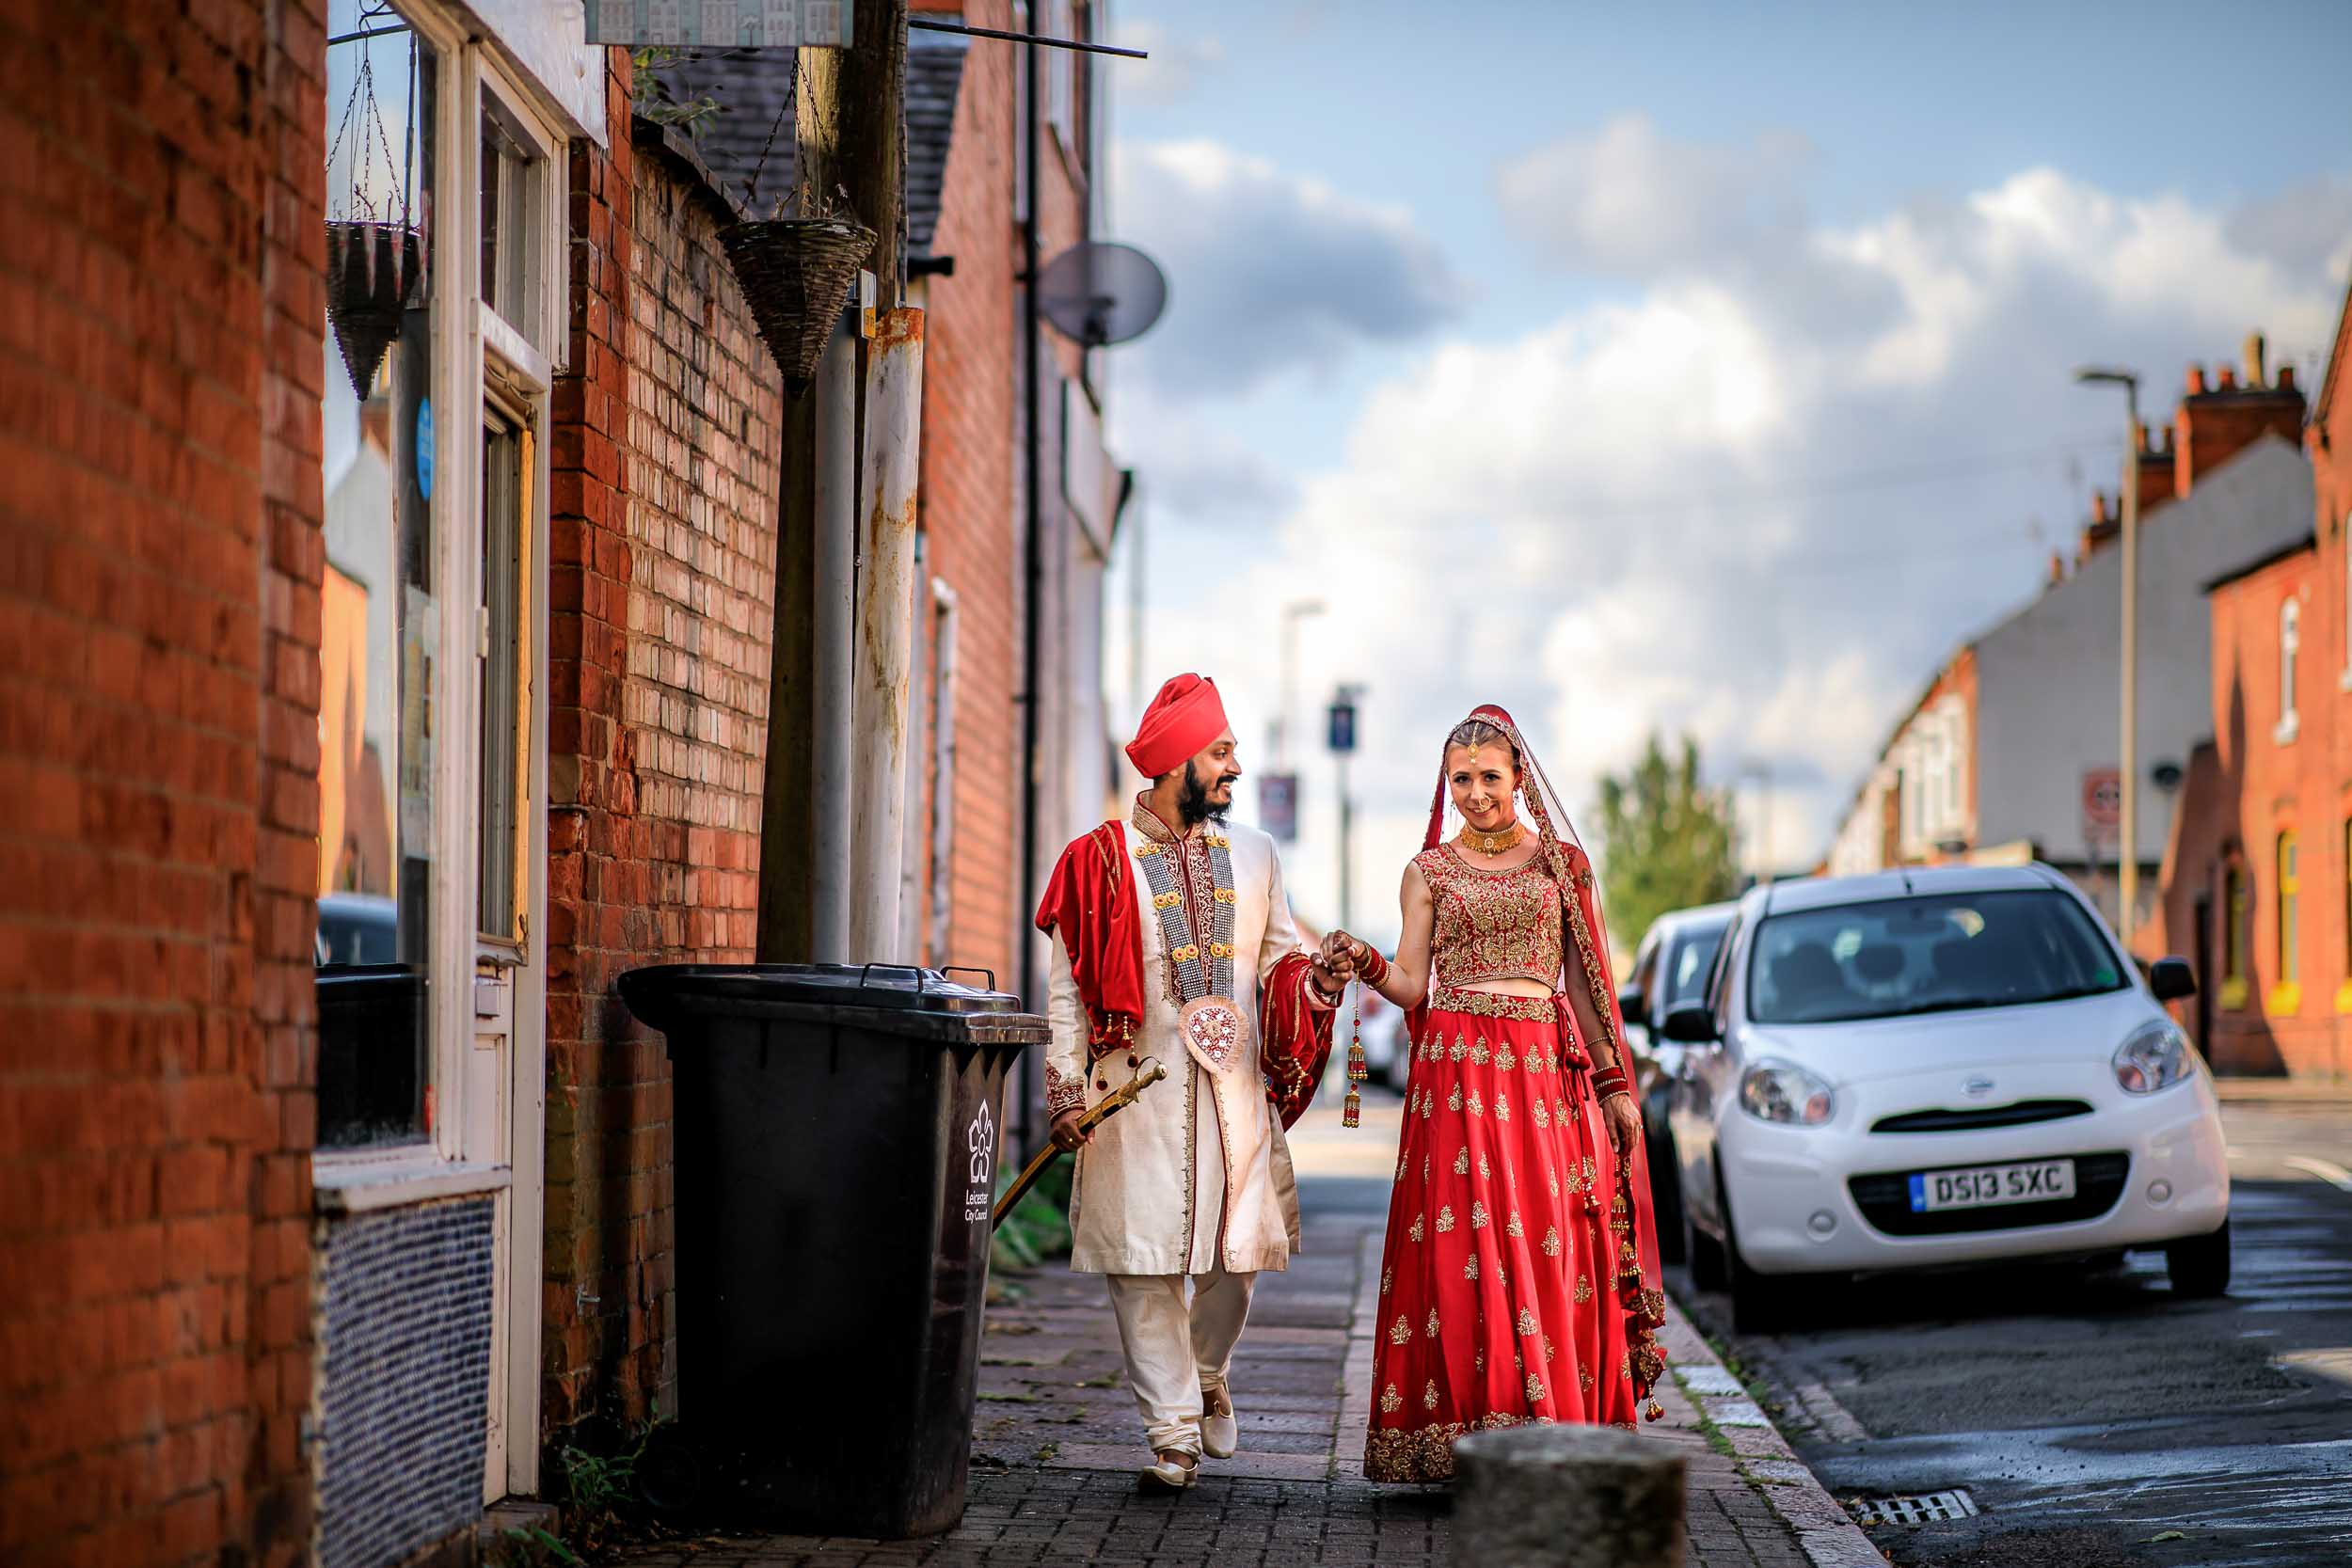 West-midlands, wedding, Photographers, Photographer, Herefordshire, David Liebst, Indian Wedding, Sikh wedding, Wedding photographer in the west-midlands,